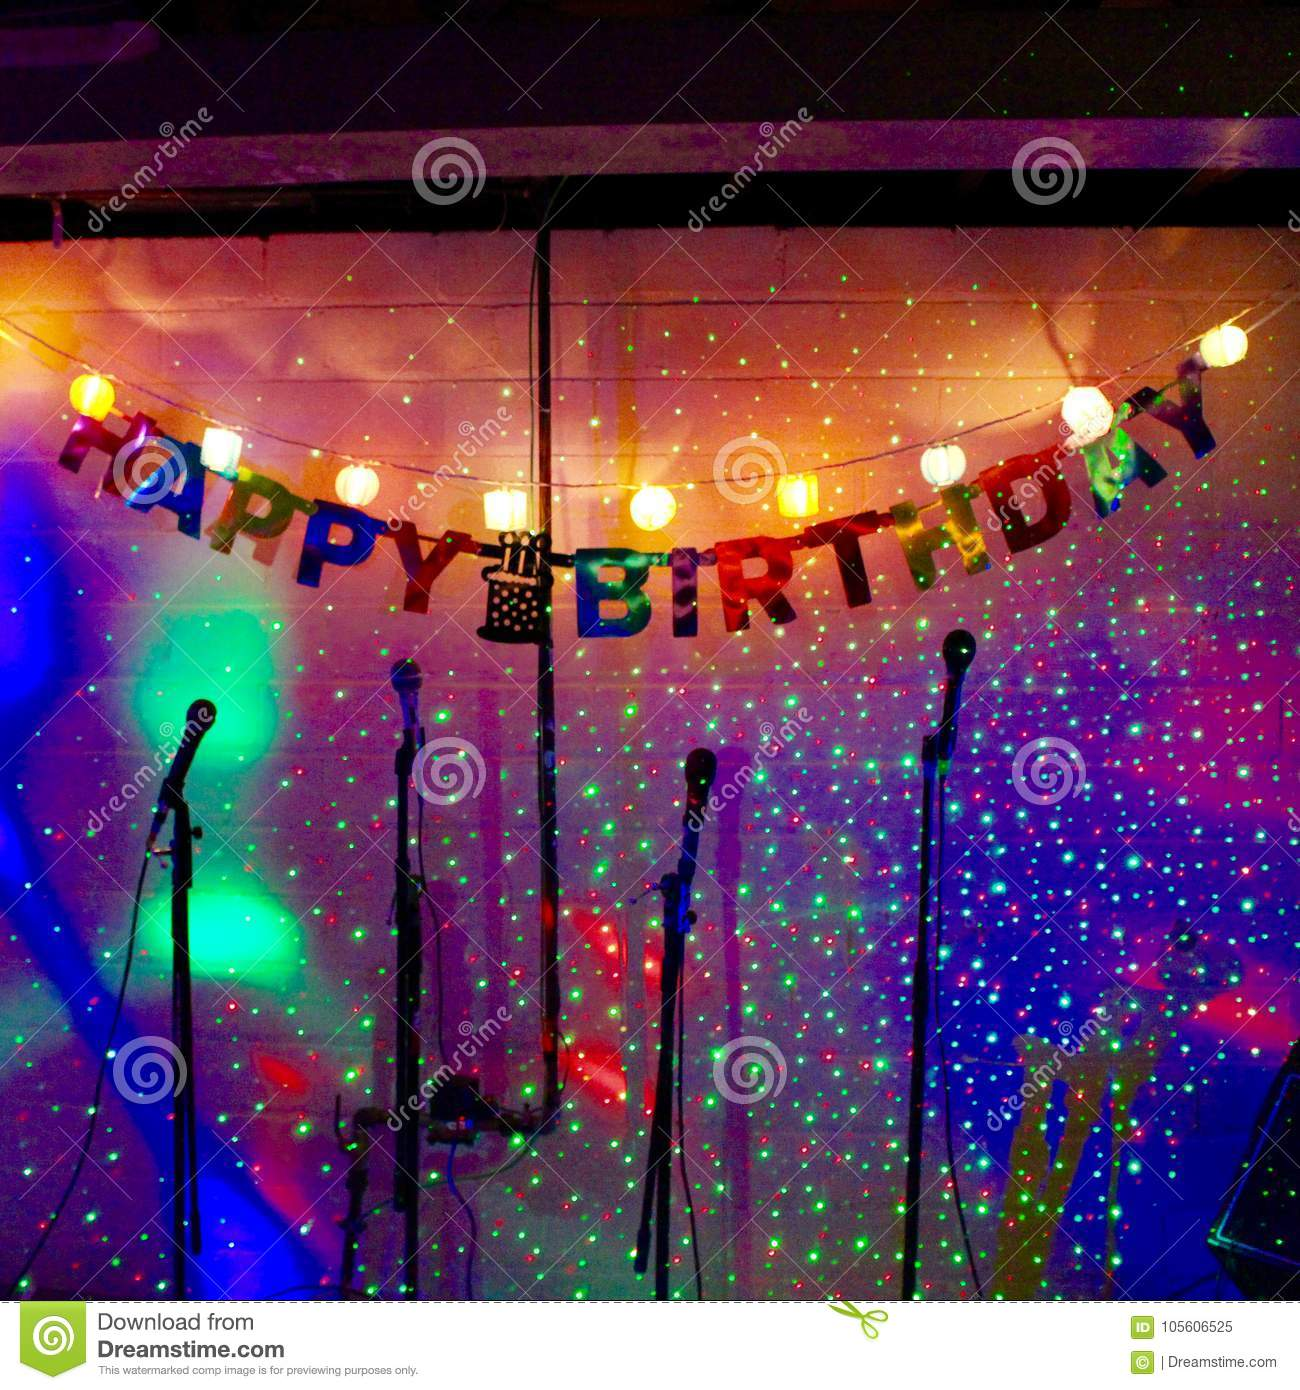 Happy Birthday Song On Sparkles Stock Image - Image of photo, mikes